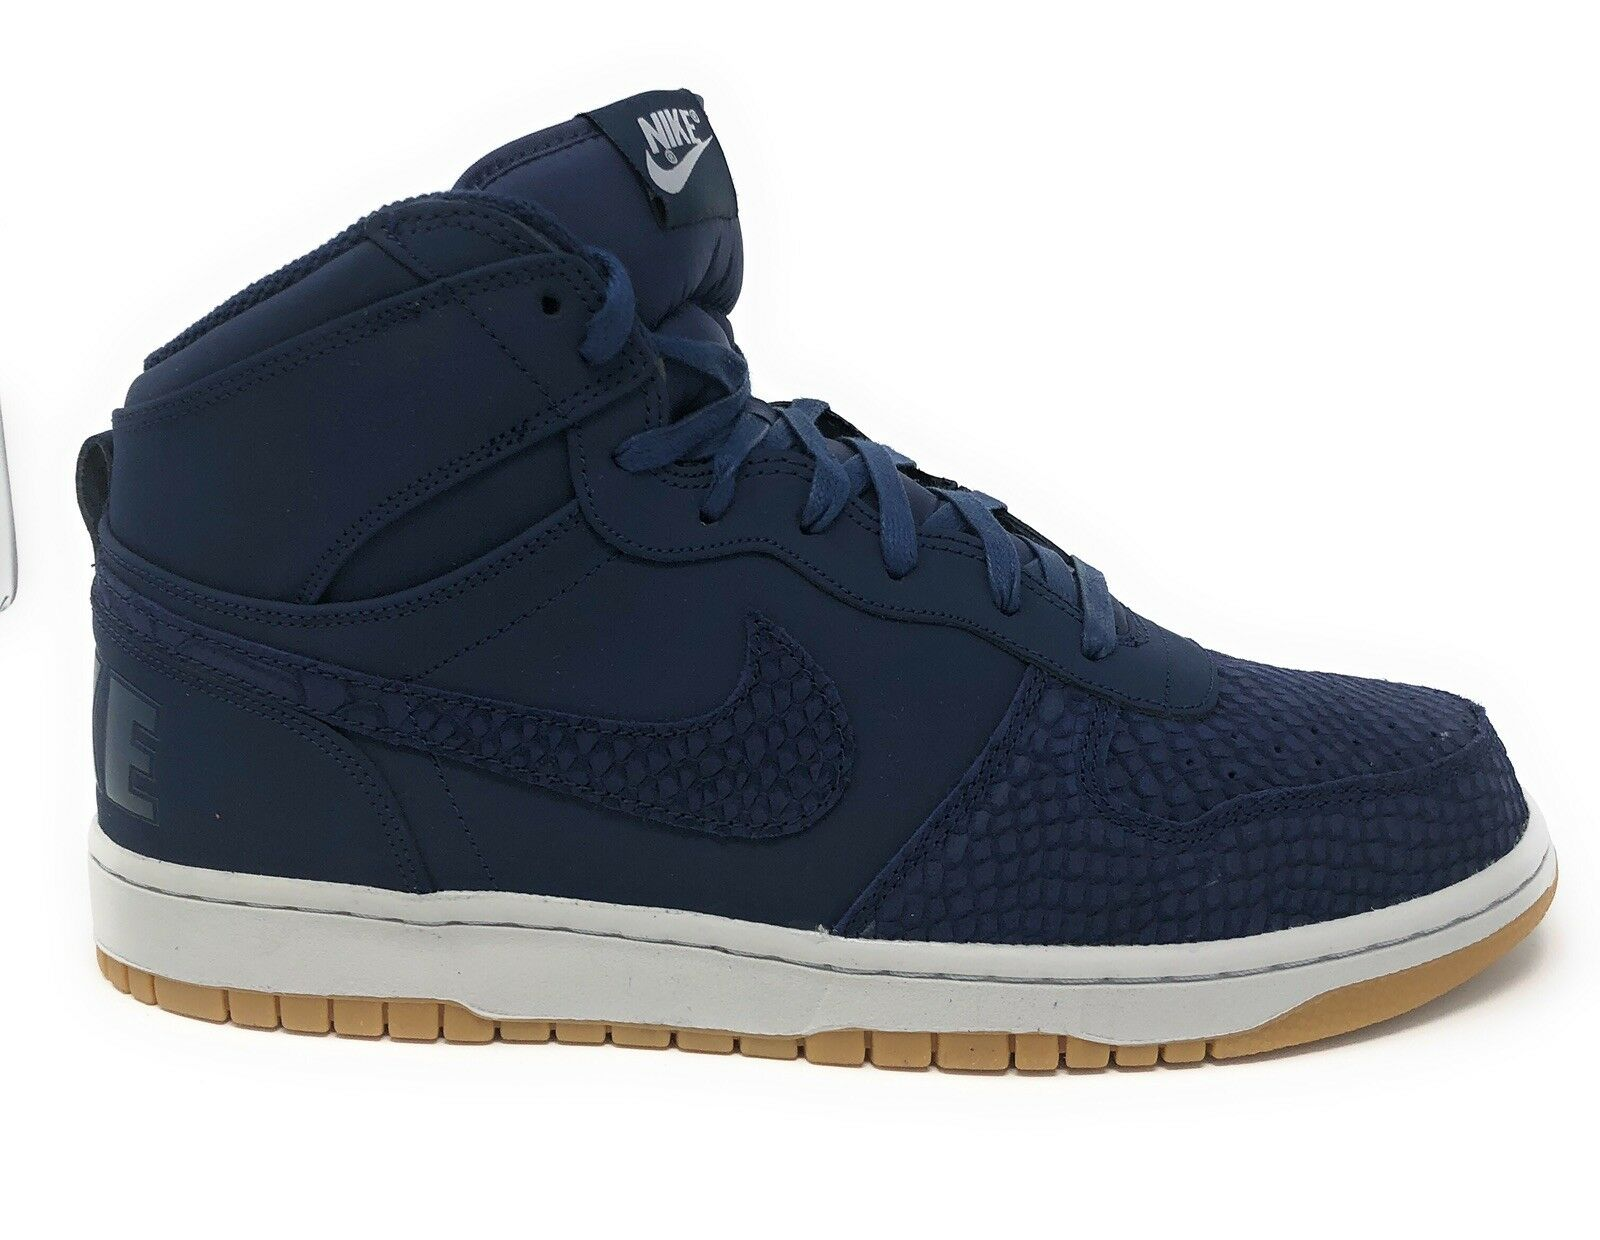 MEN'S NIKE BIG NIKE HIGH LUX SHOES midnight navy 854165 400 SIZE 12. (E1)